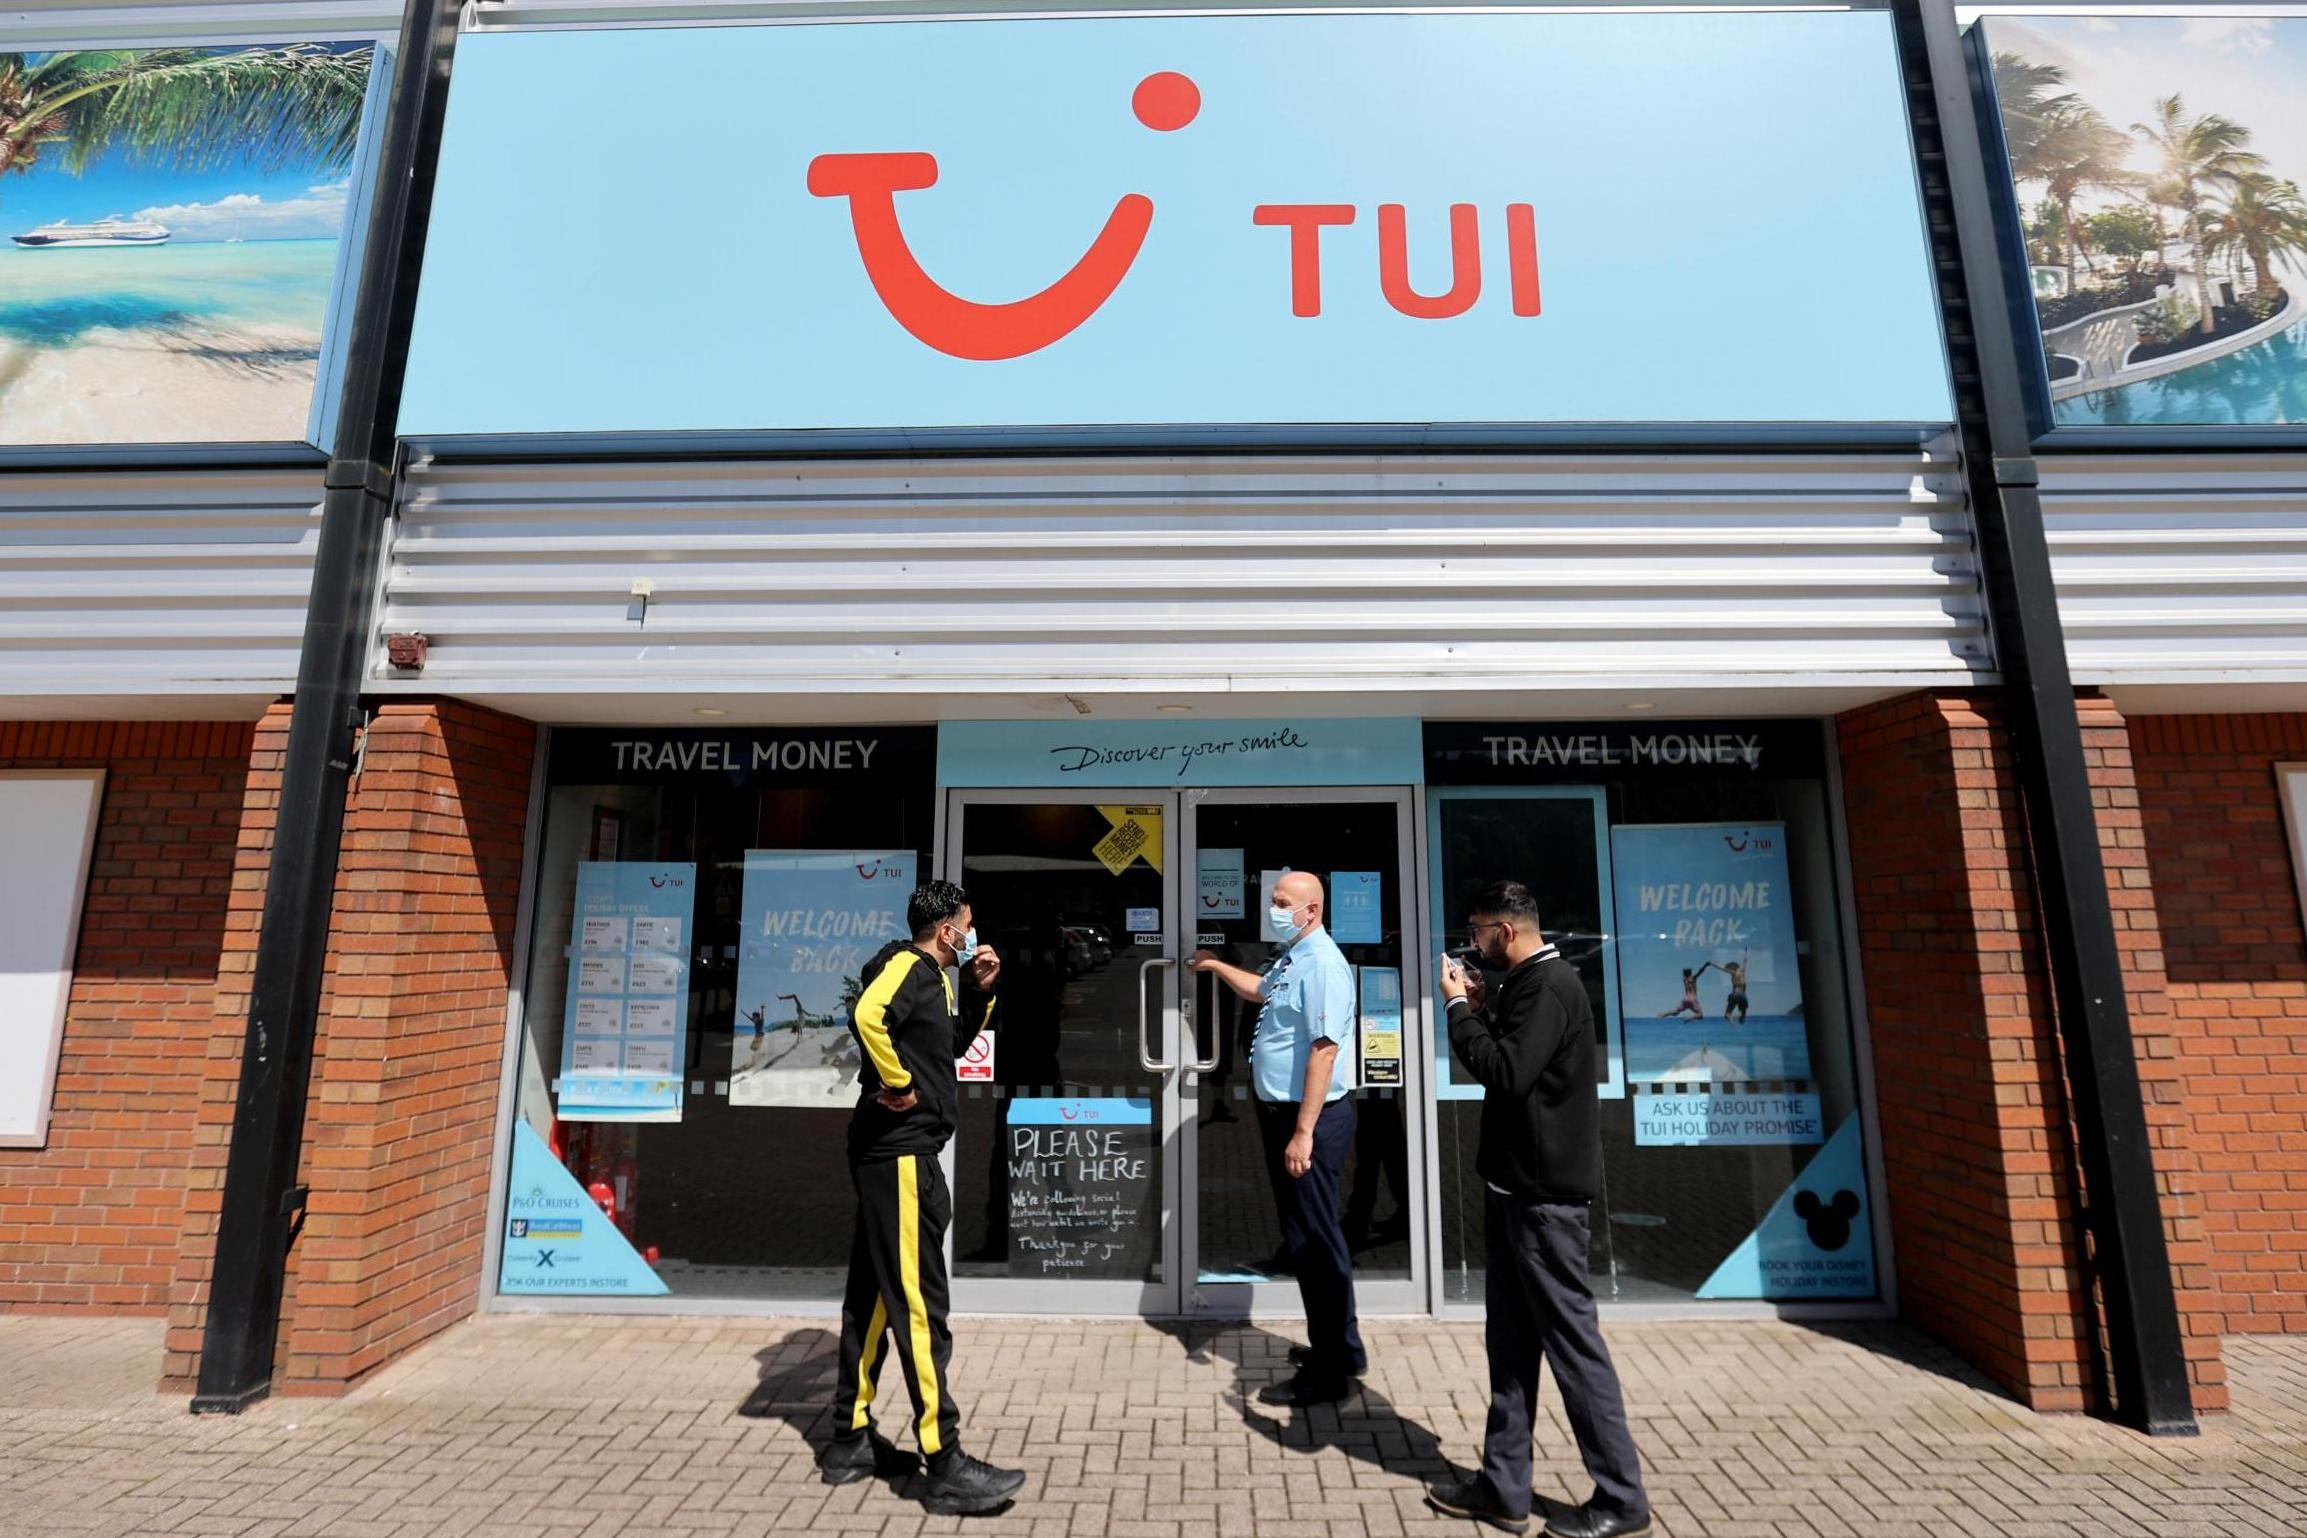 TUI To Close 166 High Street Stores After Changes In Customer Habits